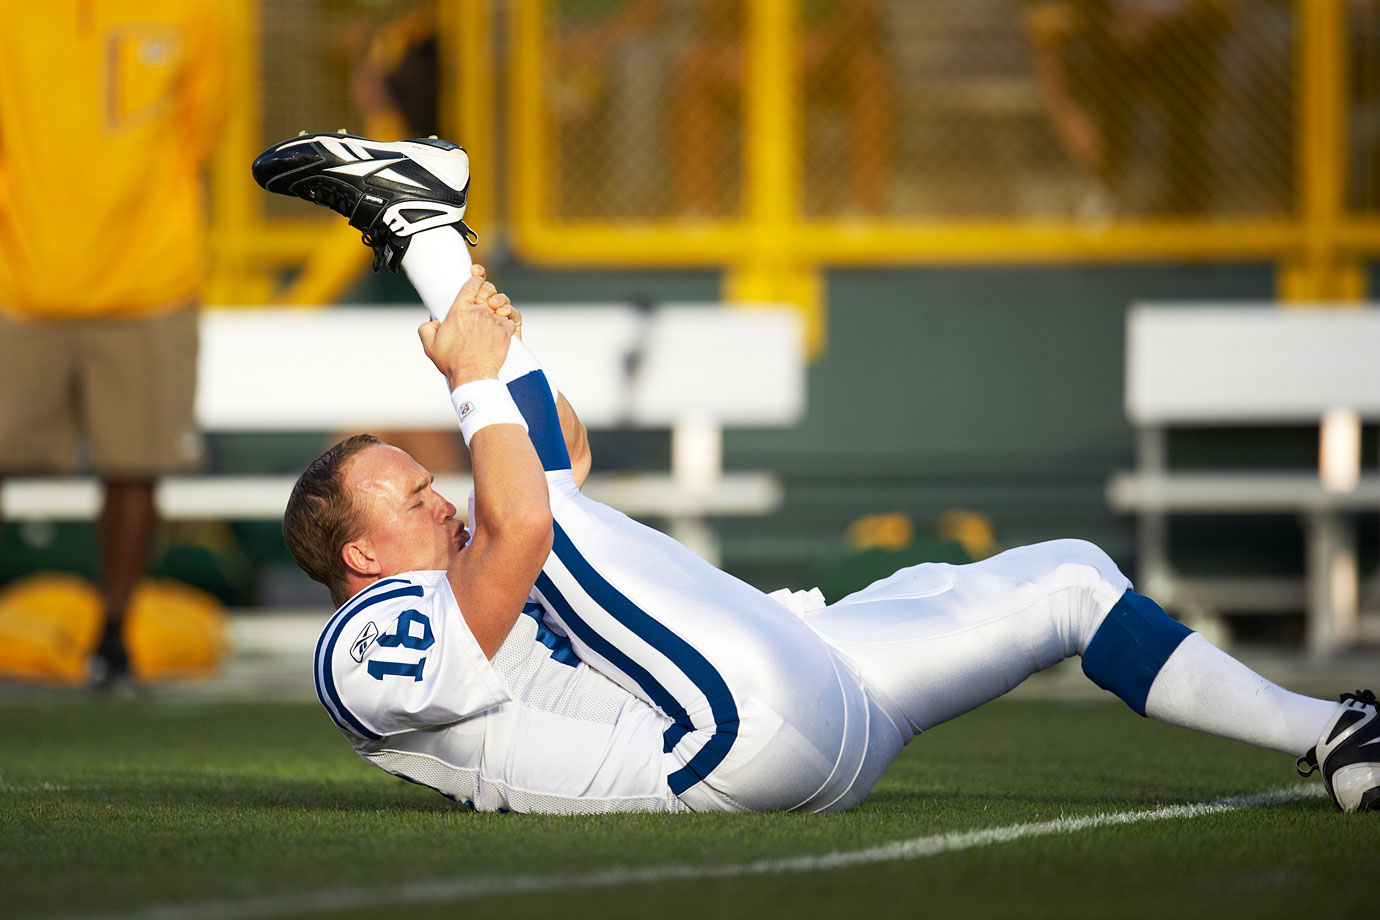 Peyton Manning stretches before a Colts-Packers preseason game in Green Bay.